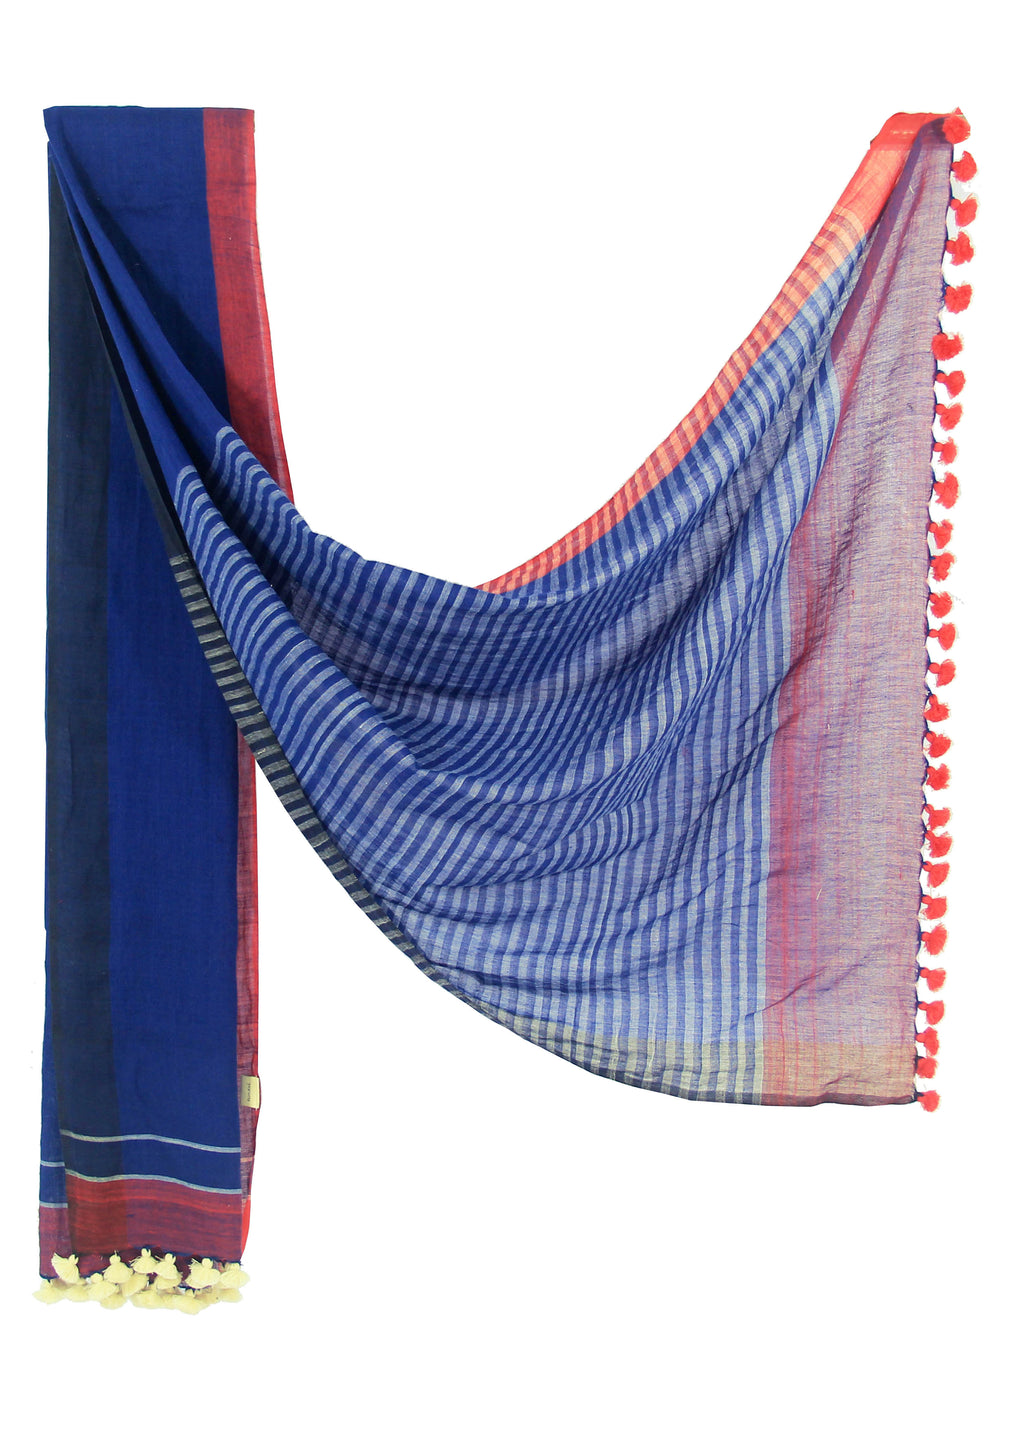 Handwoven organic cotton scarf - SHARANI